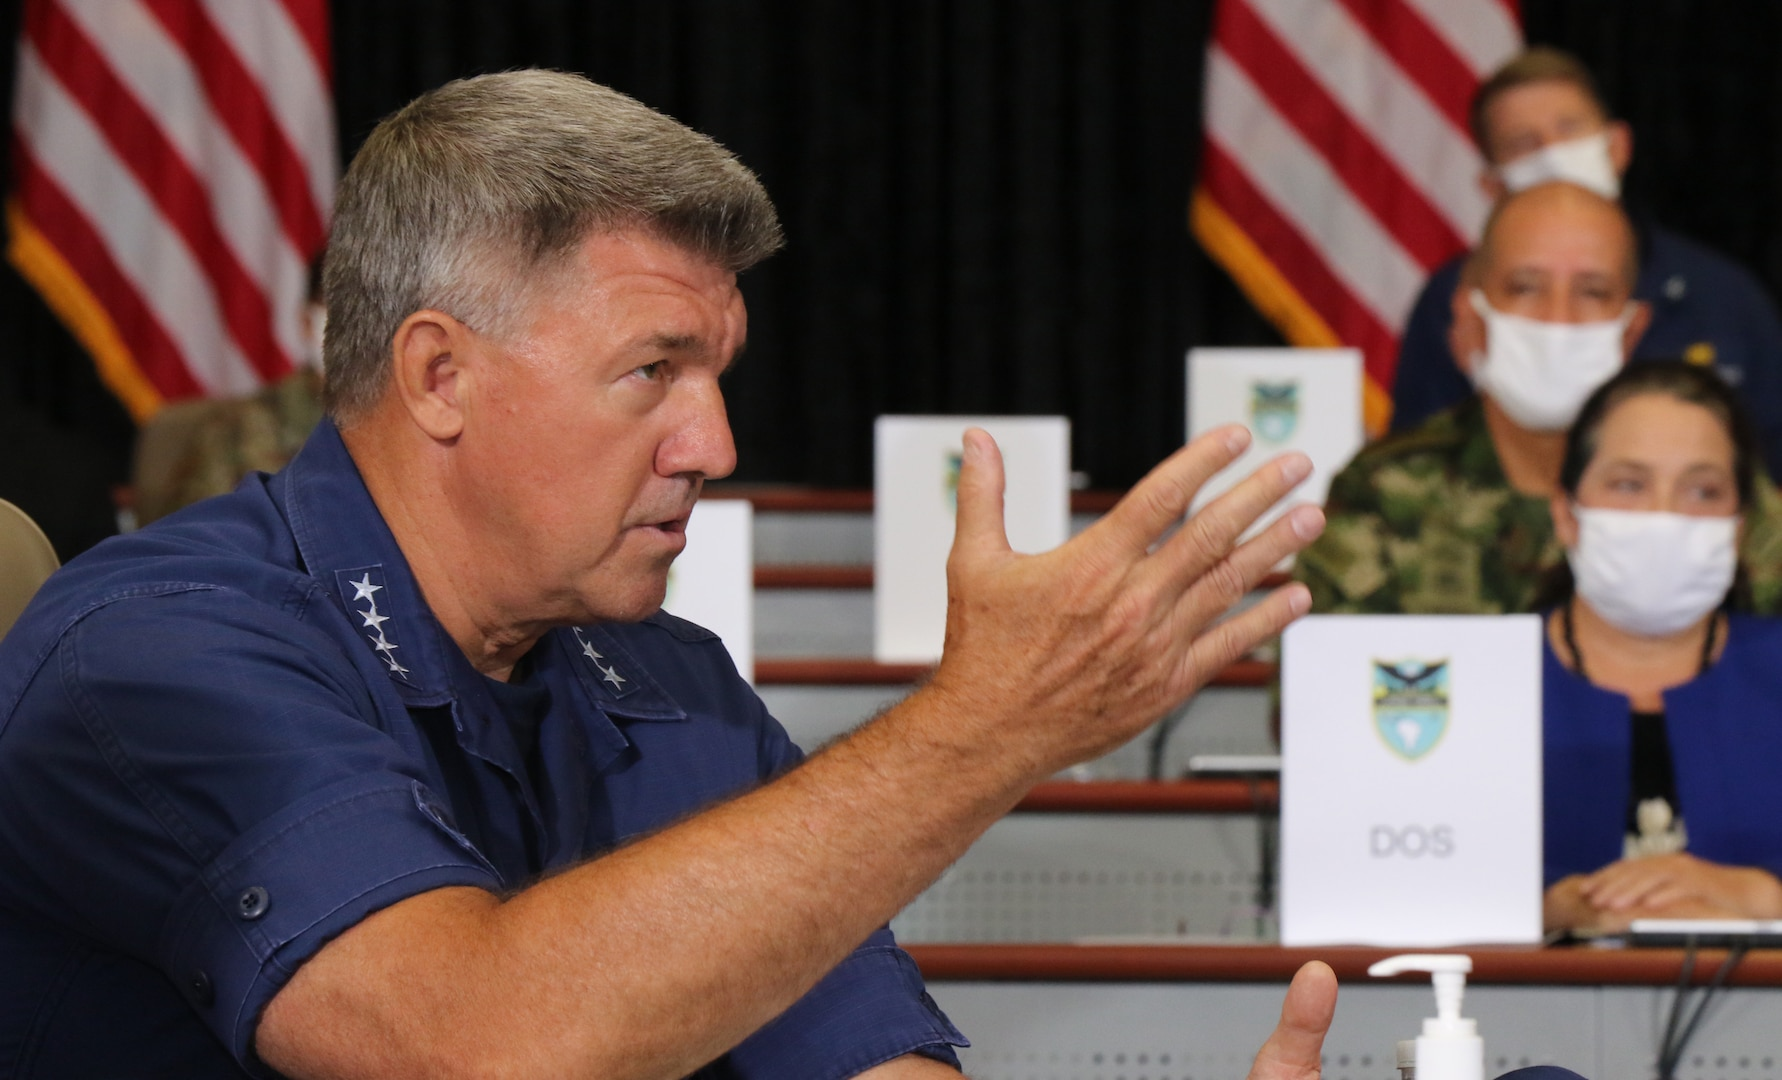 U.S. Coast Guard Commandant Adm. Karl L. Schultz speaks during a briefing at U.S. Southern Command headquarters in Doral, Florida.